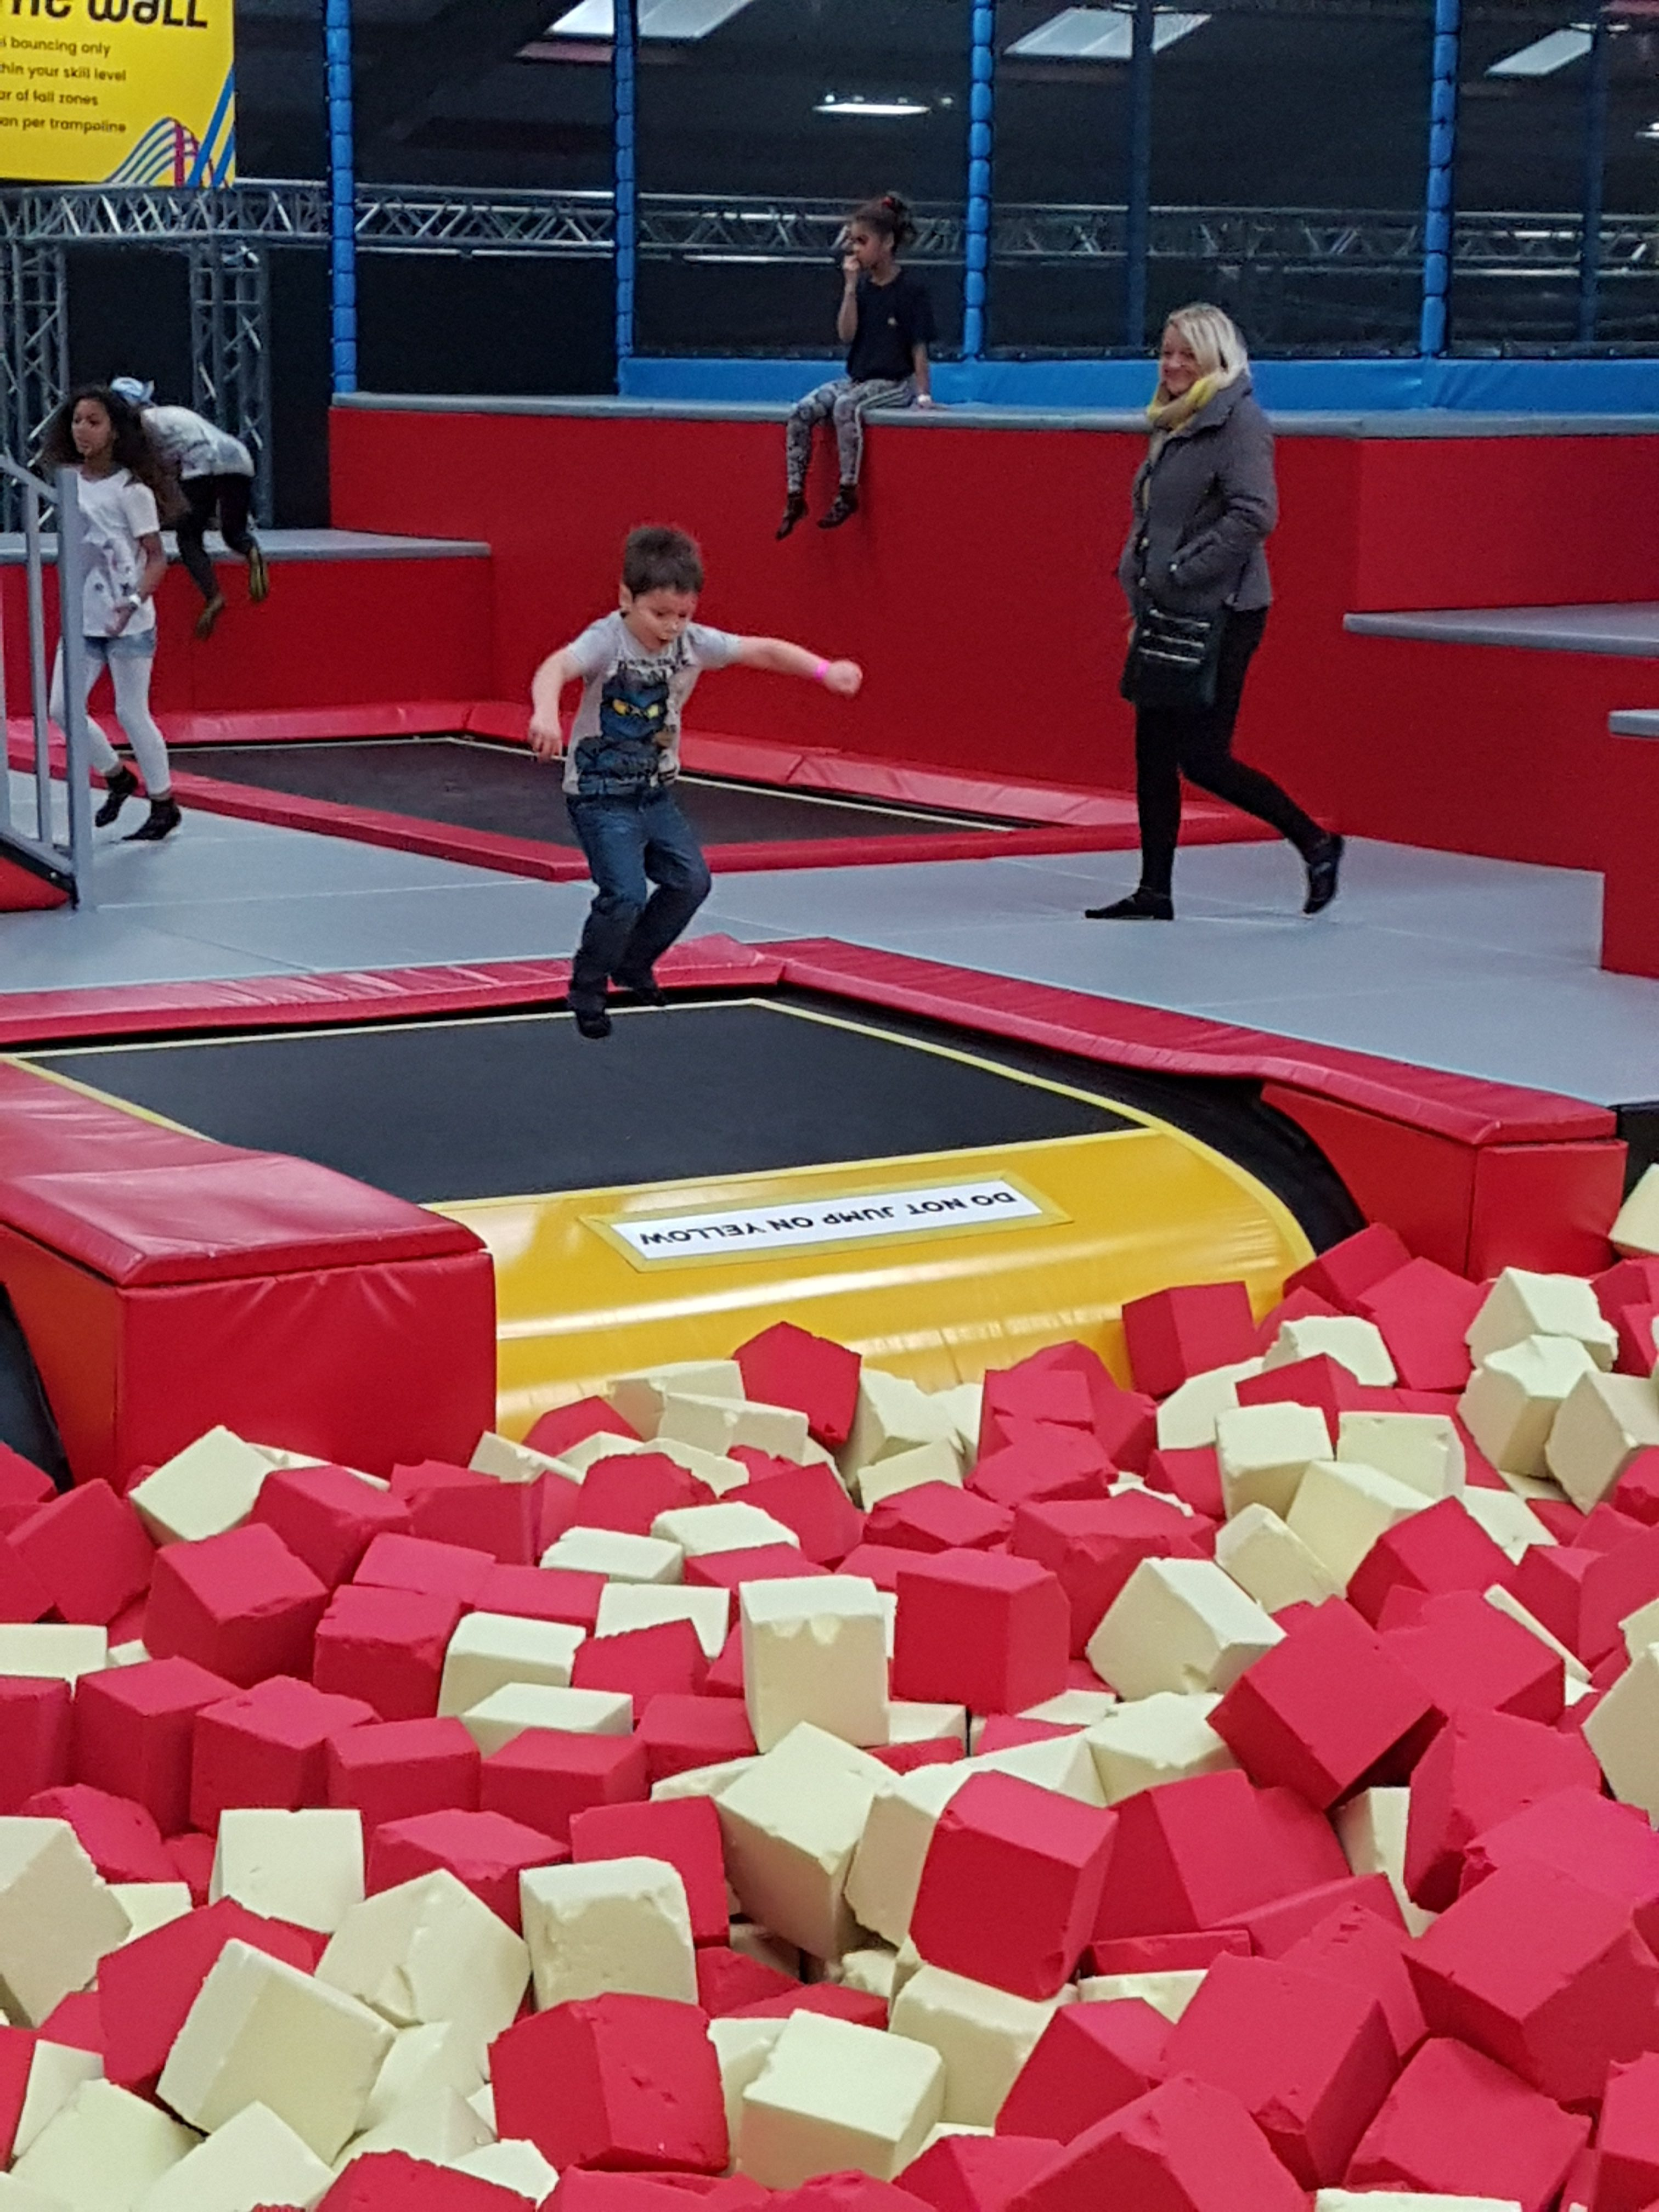 Jumping in to foam pit at Red Kangaroo Trampoline park Reading